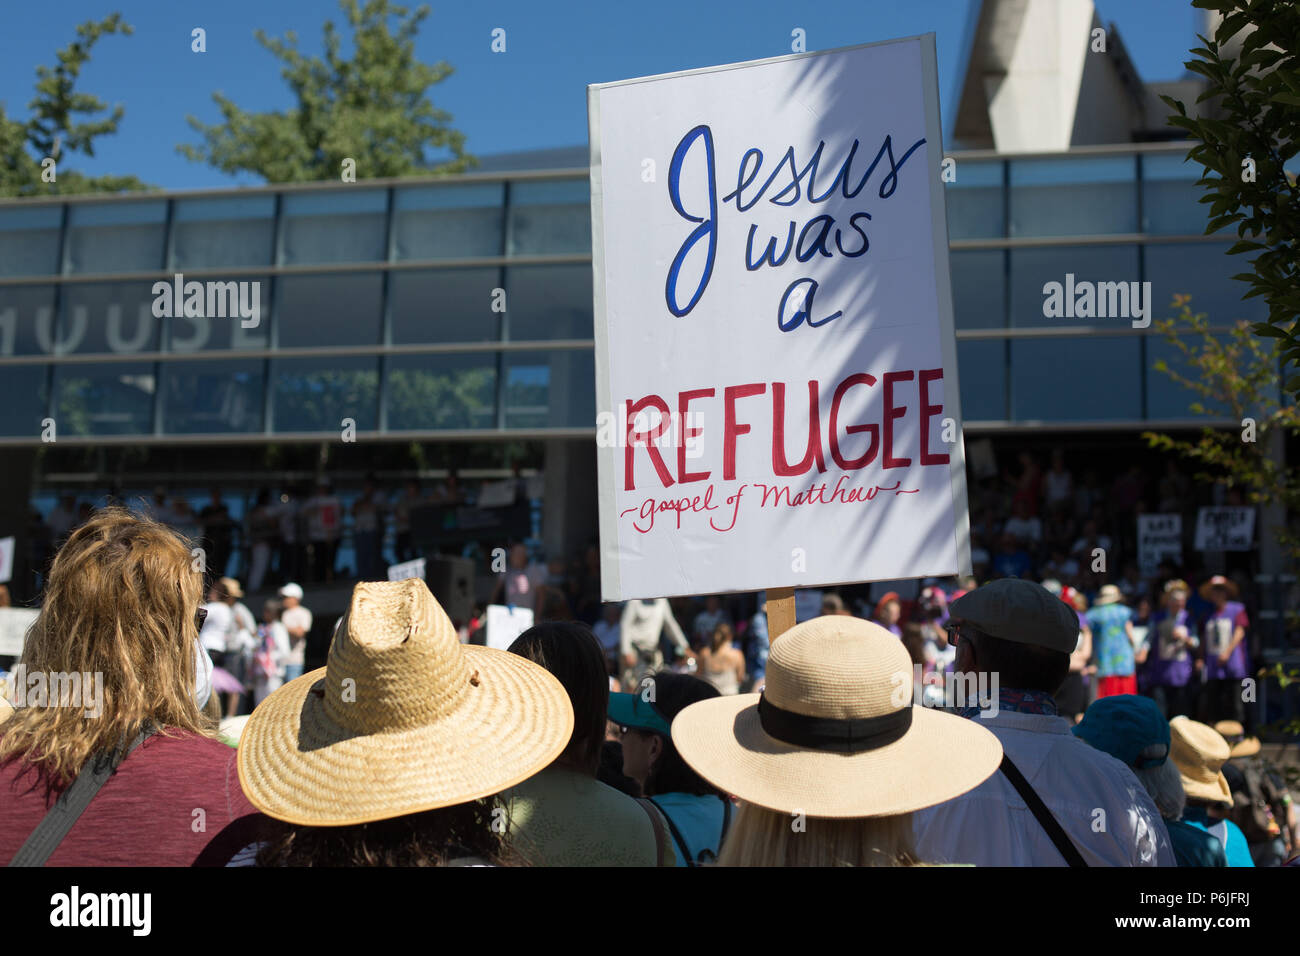 Eugene, Oregon, USA. 30th June, 2018. Citizens rally to protest the separation of immigrant children from their parents when crossing the border into the United States. Copyright: Gina Kelly/Alamy Live News Stock Photo